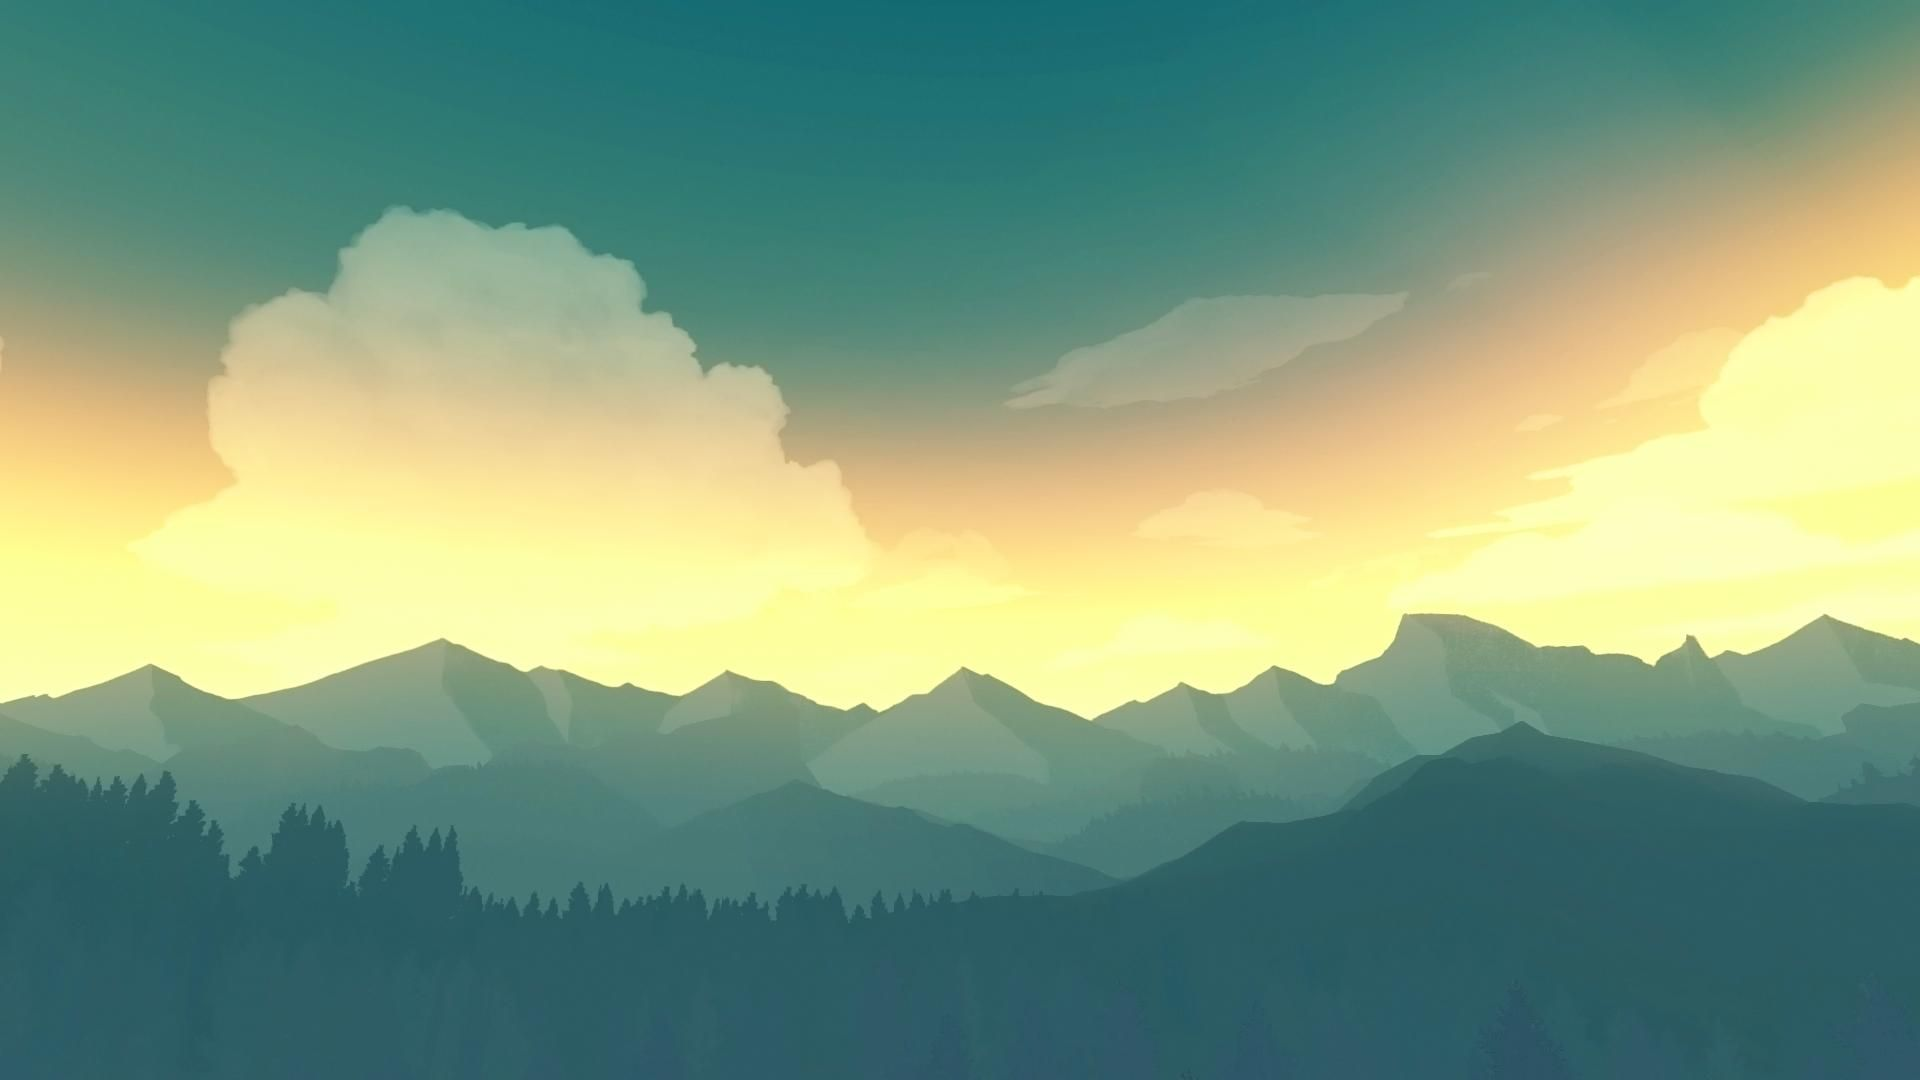 best background wallpapers reddit: Firewatch Is A Beautiful Game